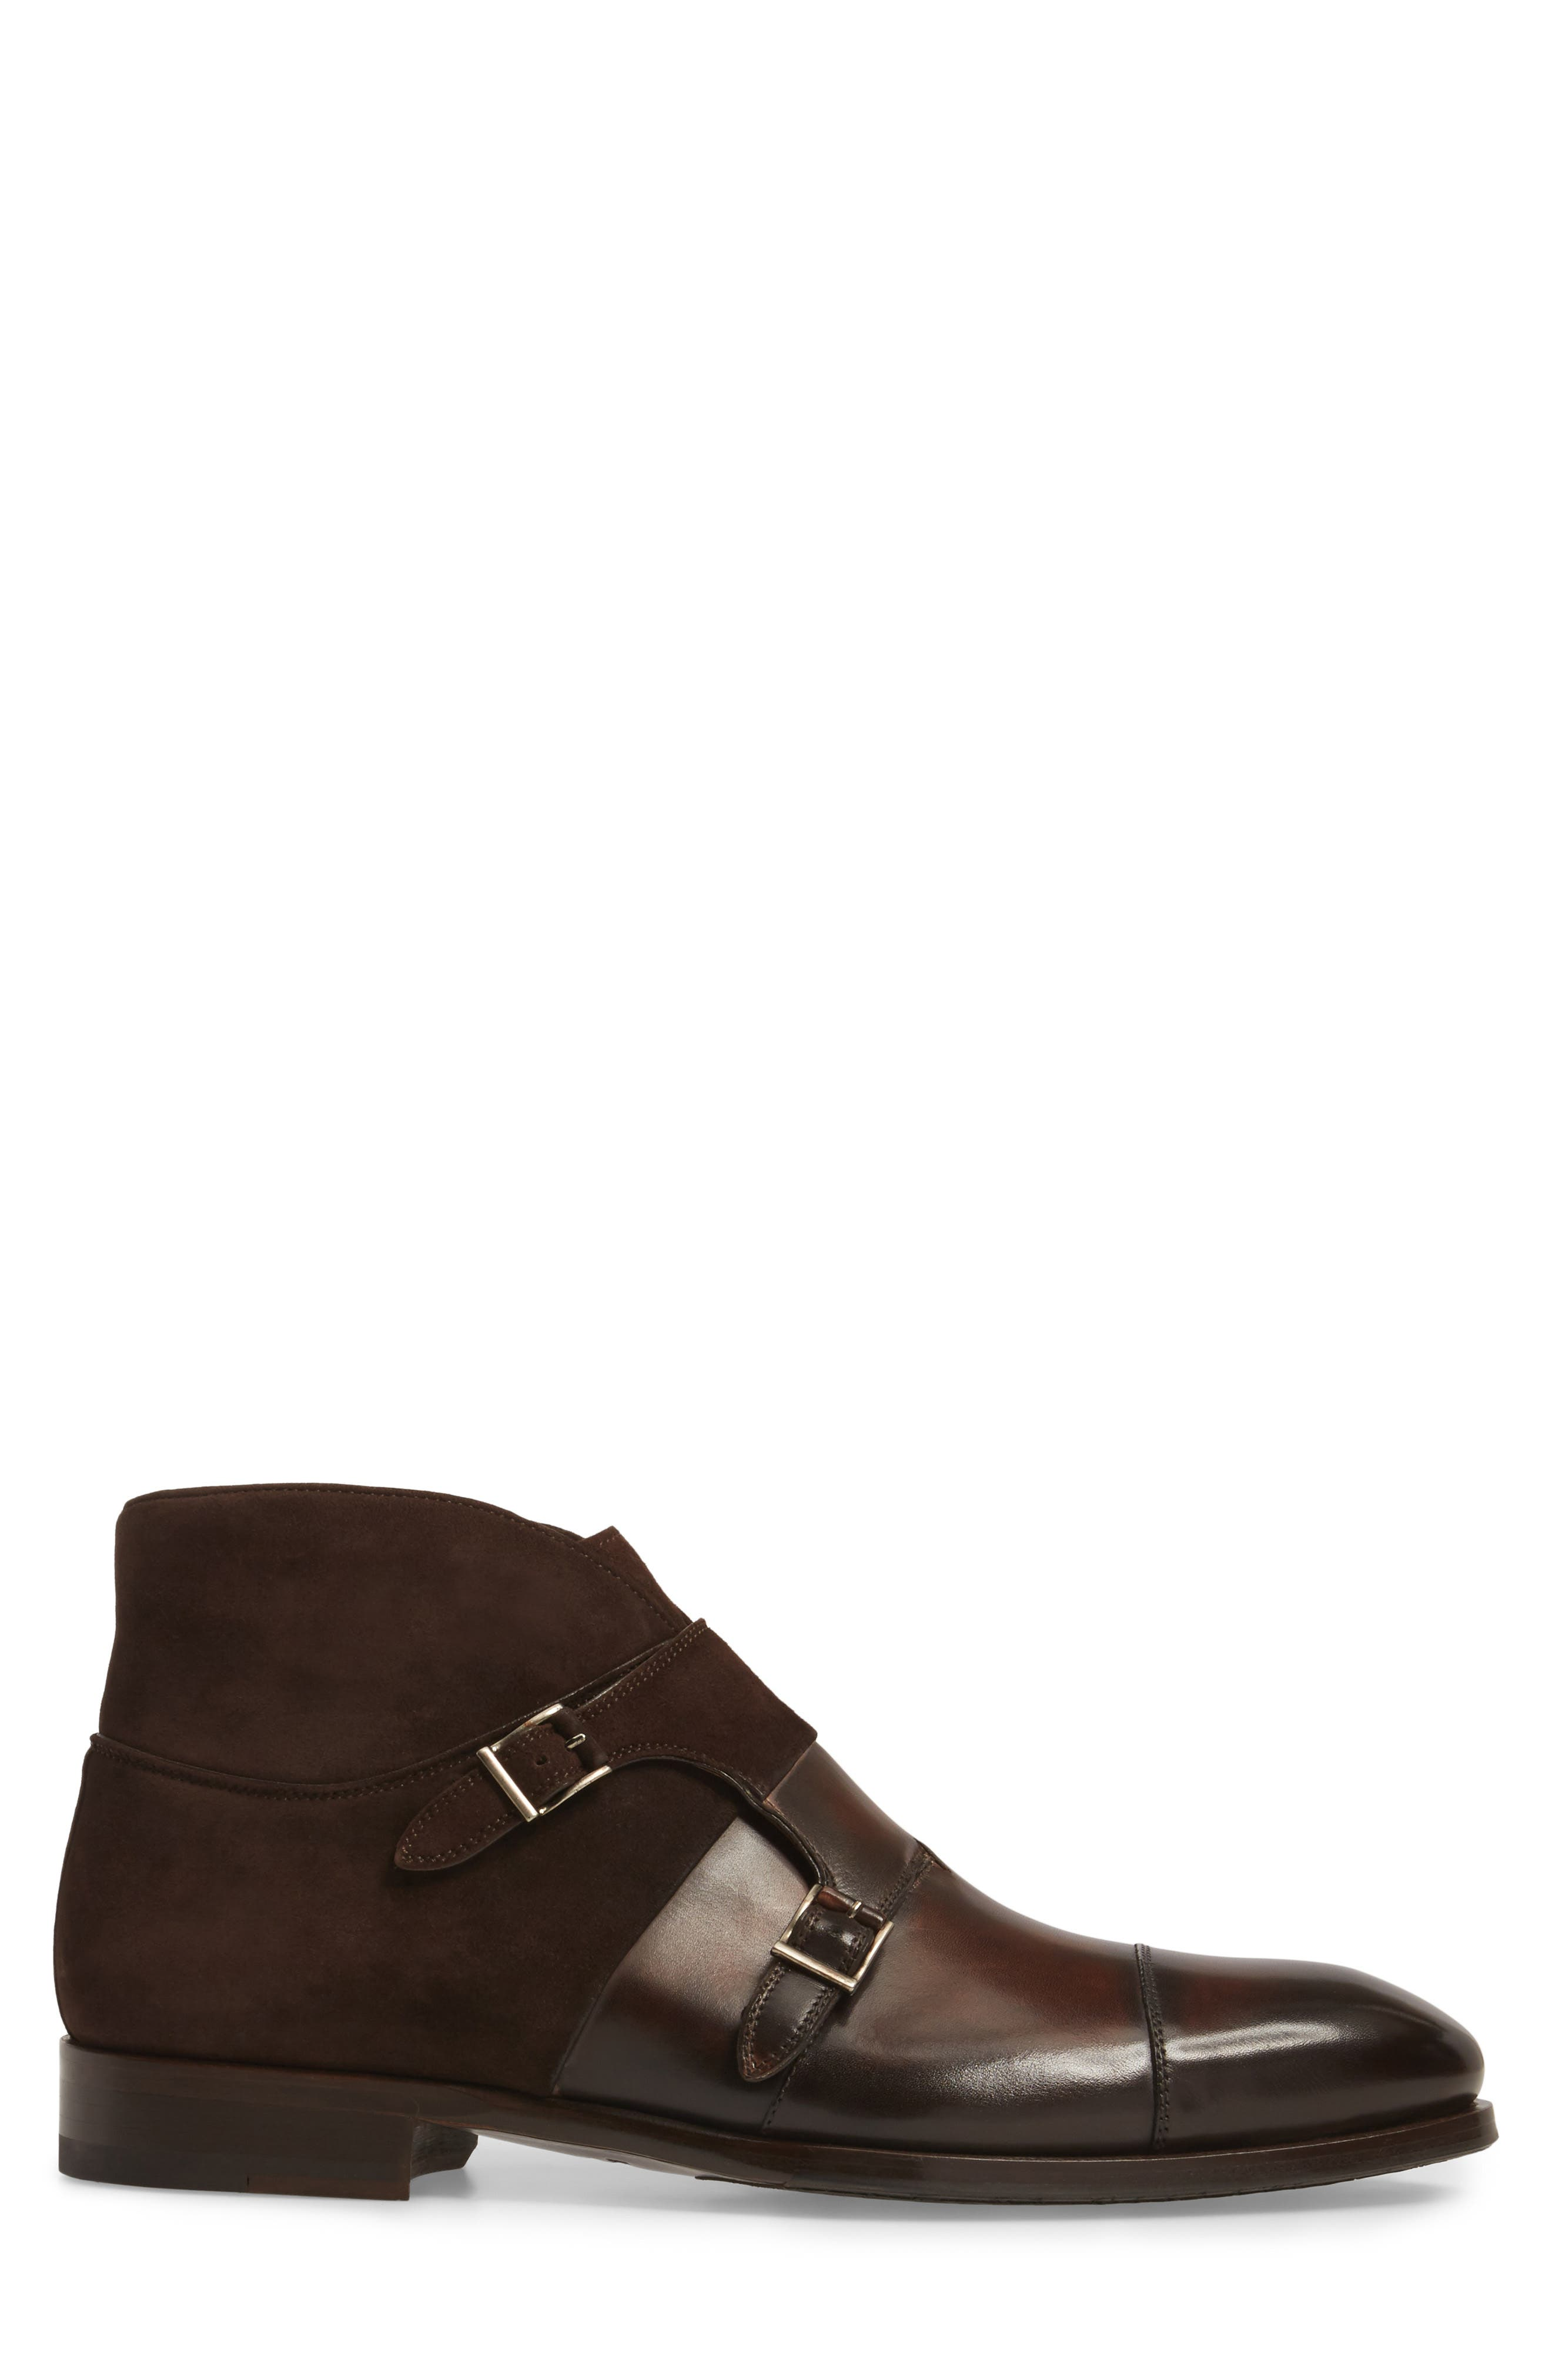 Alternate Image 3  - Magnanni Octavian Double Monk Strap Boot (Men)